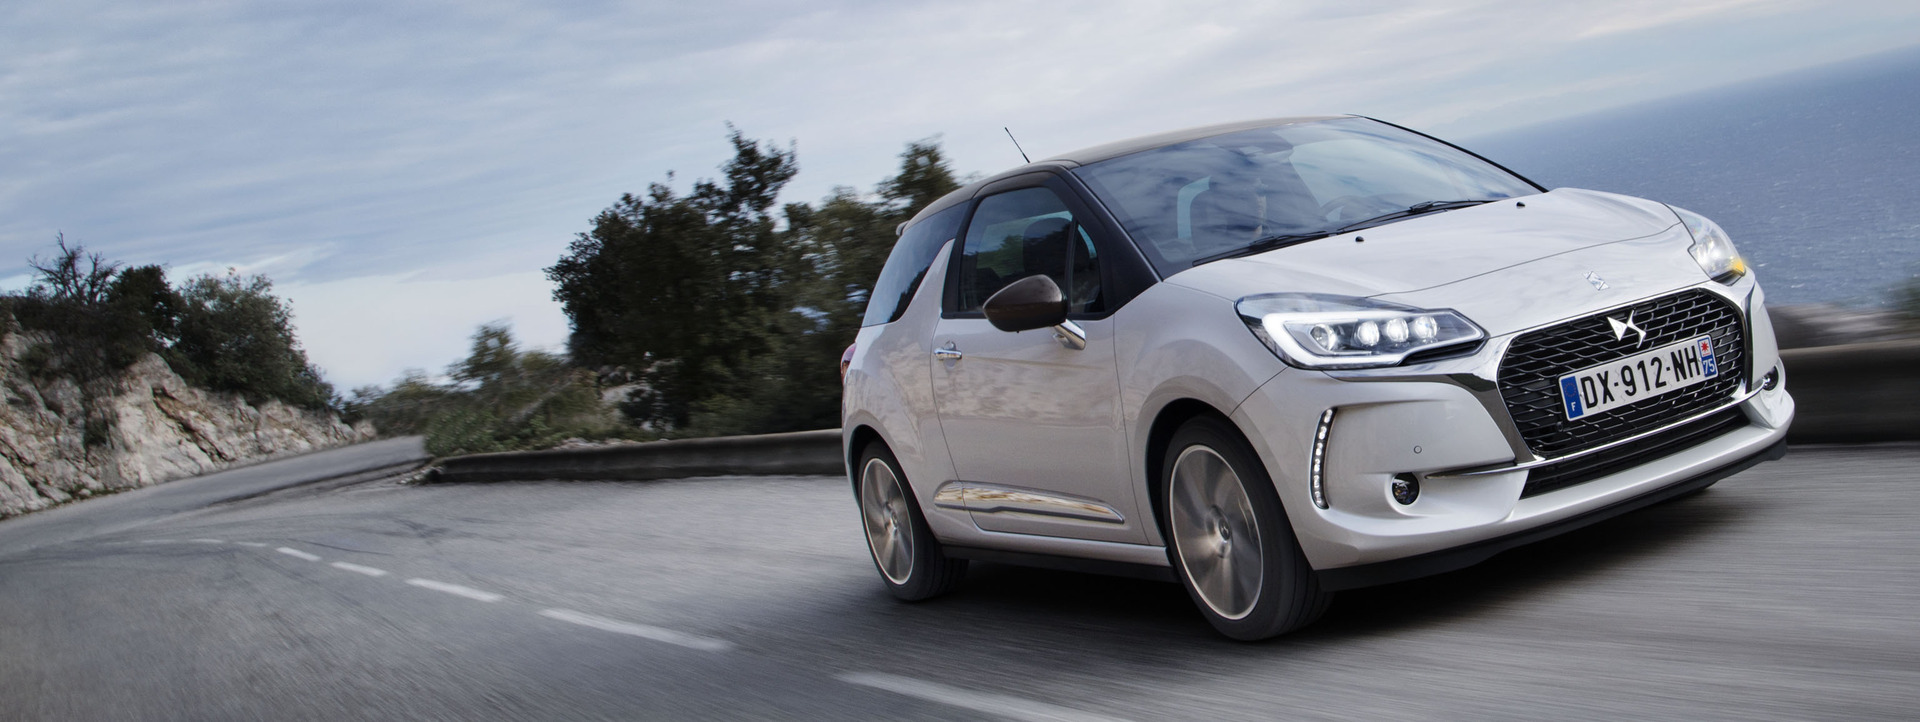 Lateral DS 3